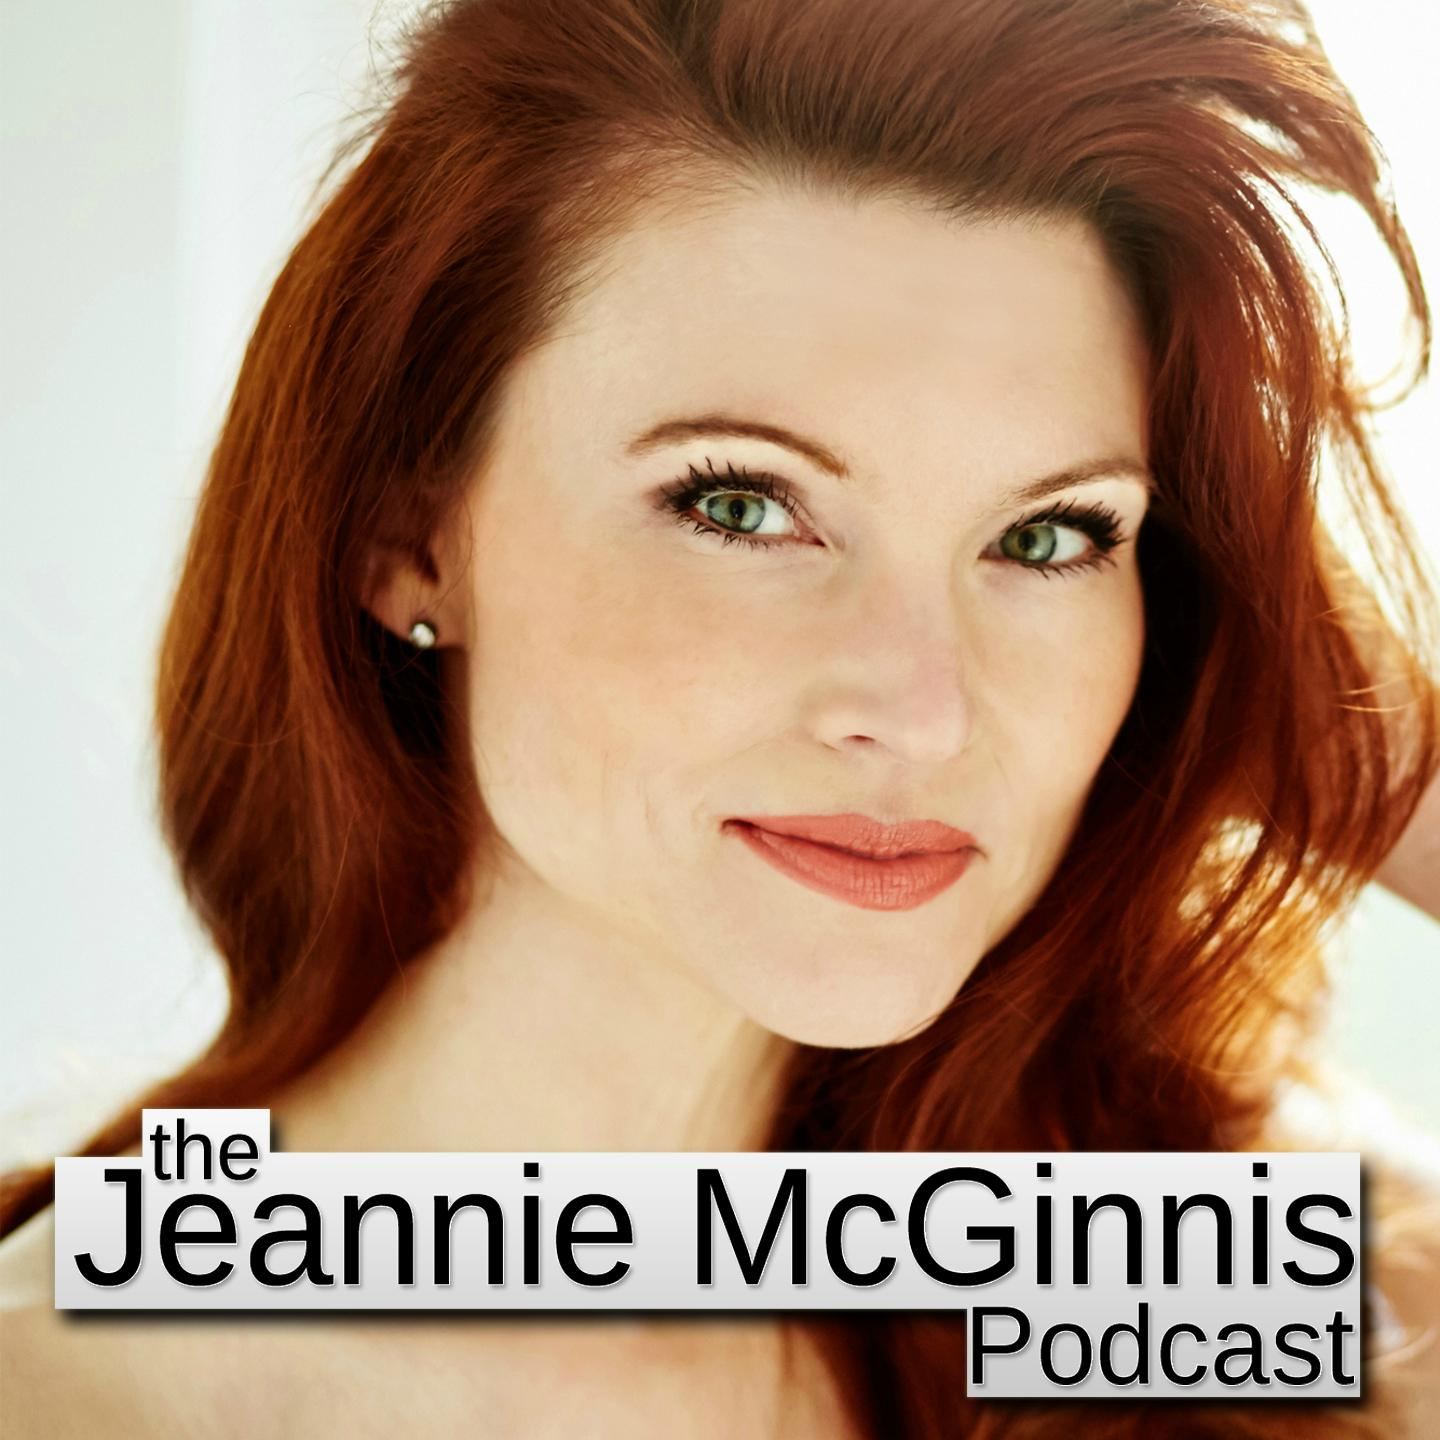 The Jeannie McGinnis Podcast